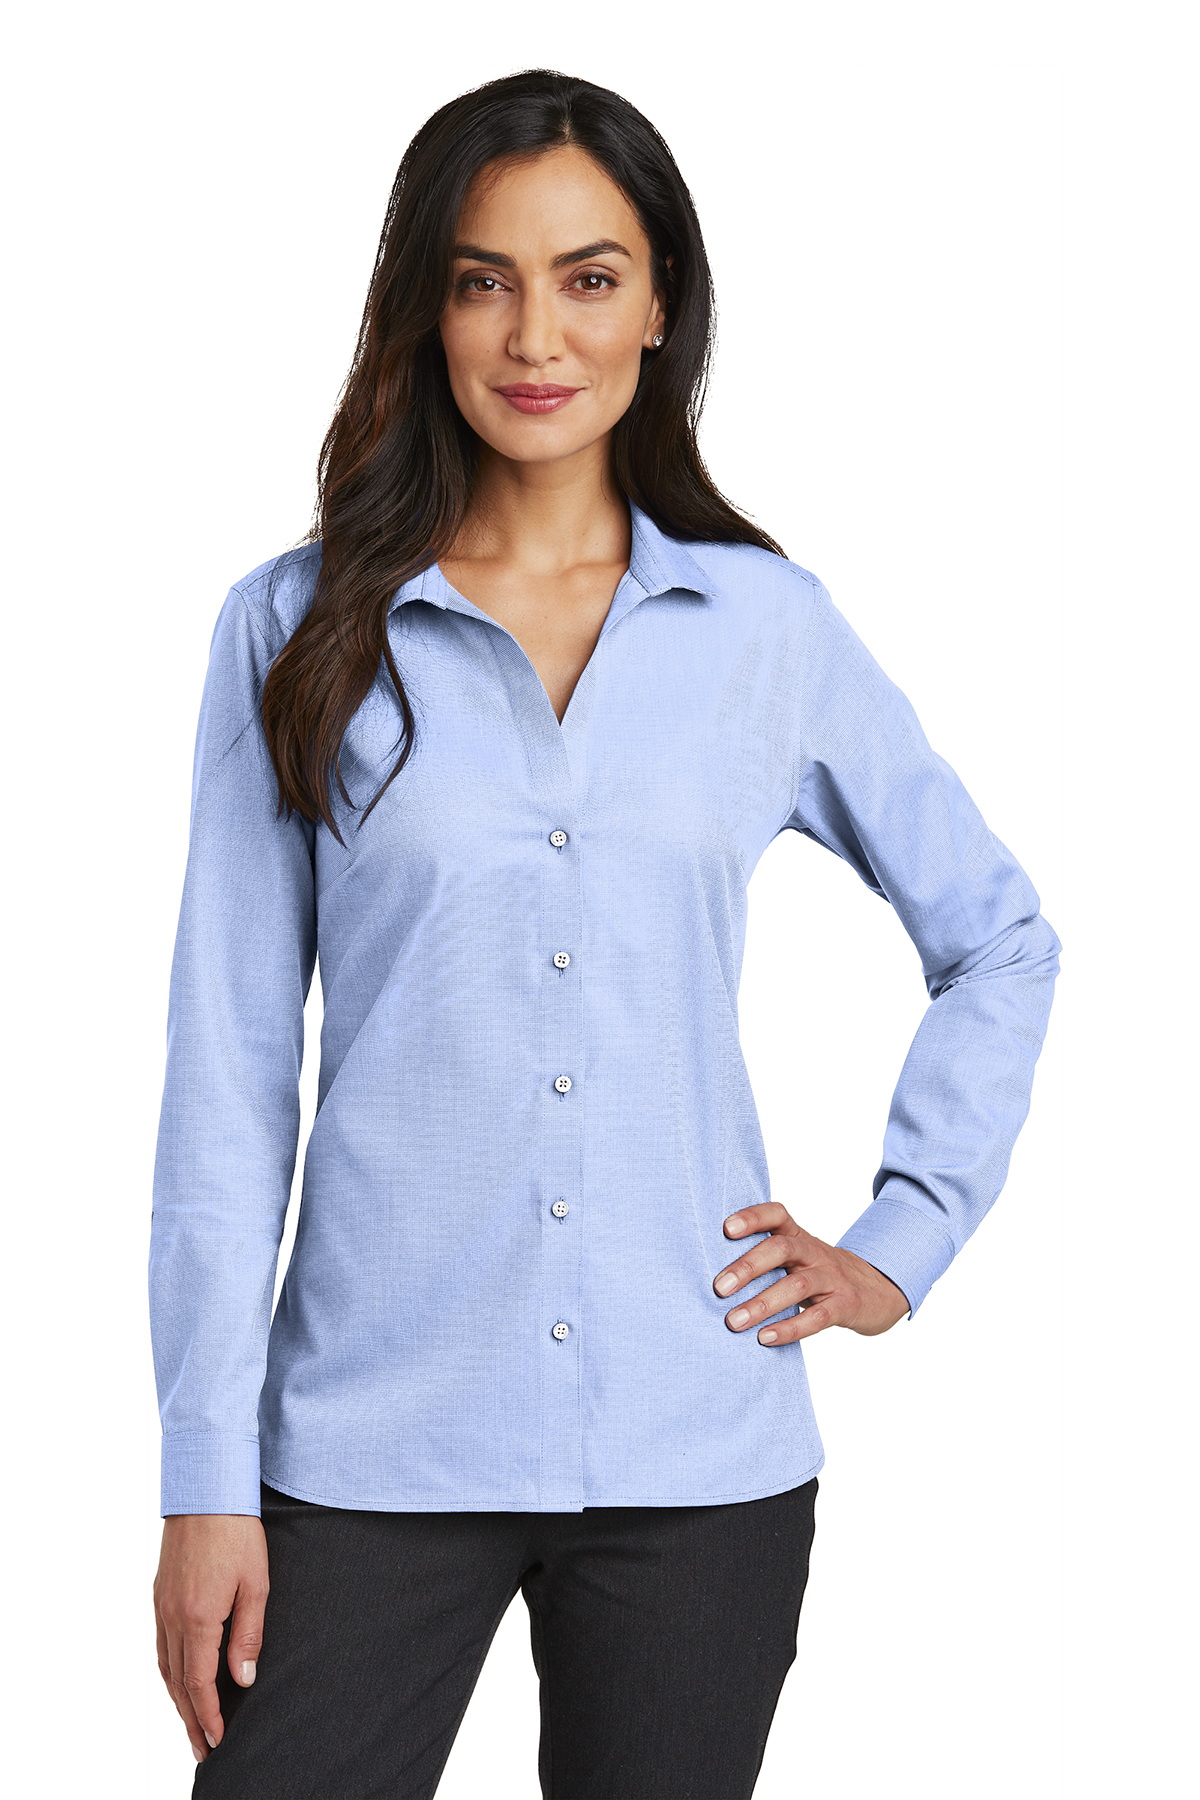 Red House RH470 - Ladies Nailhead Non-Iron Shirt